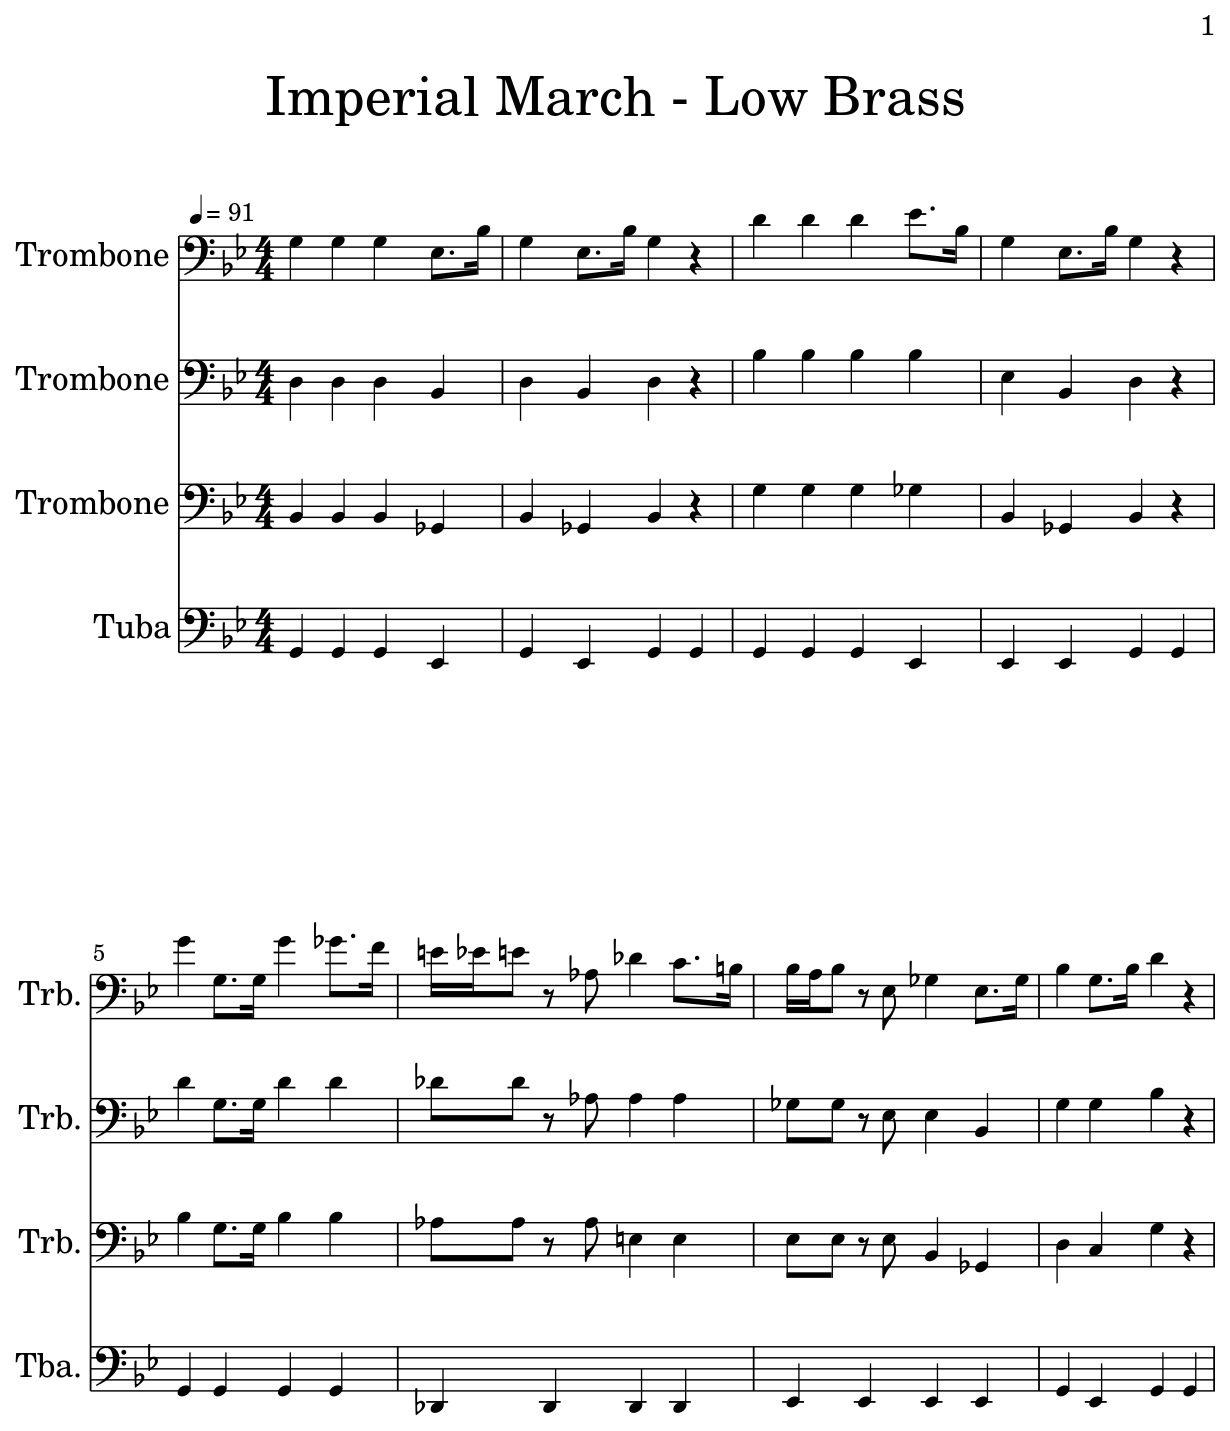 Imperial March Trombone Sheet Music : imperial, march, trombone, sheet, music, Imperial, March, Brass